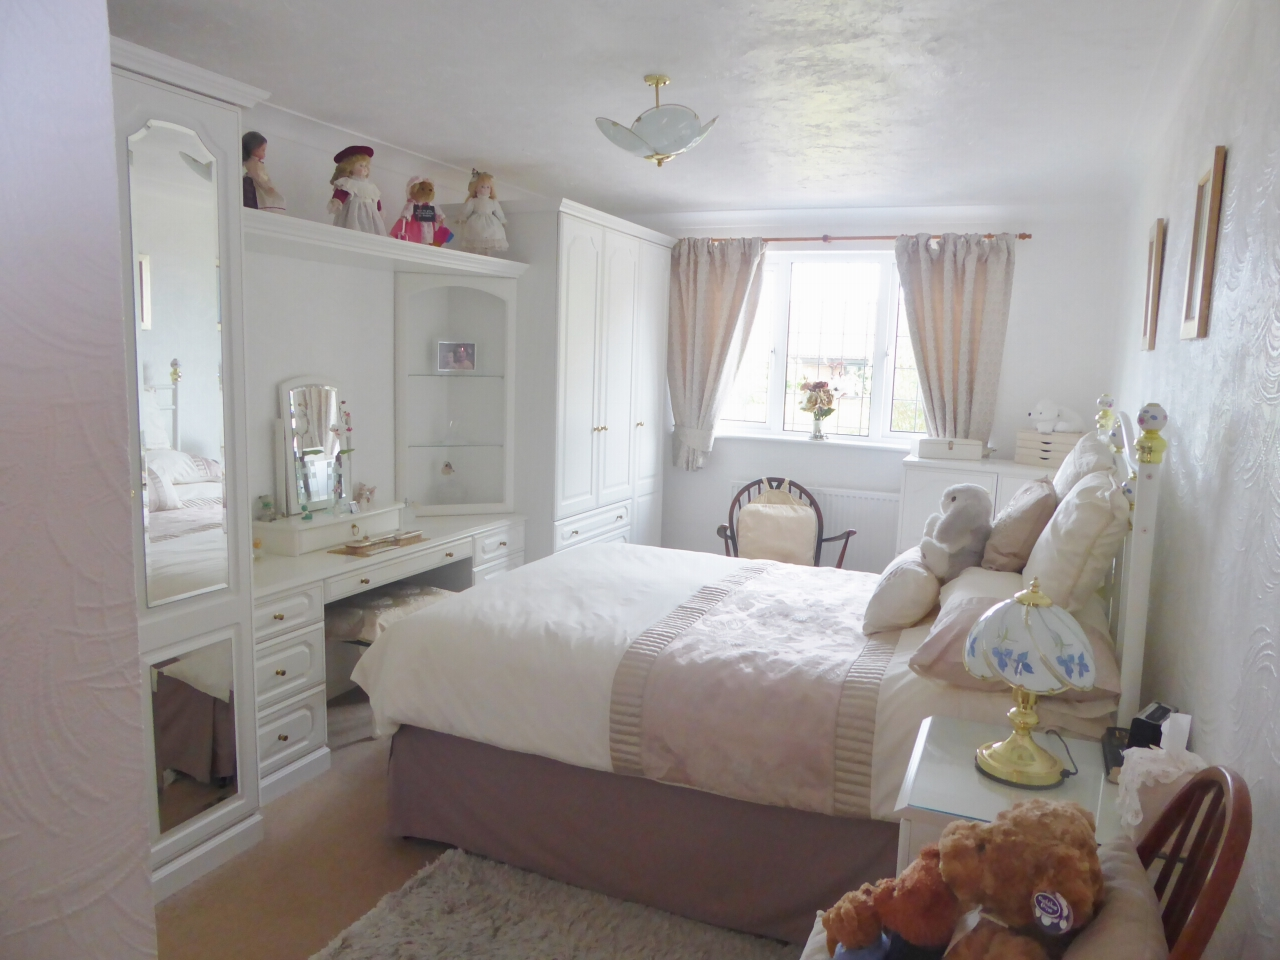 3 bedroom detached bungalow SSTC in Abergele - Photograph 7